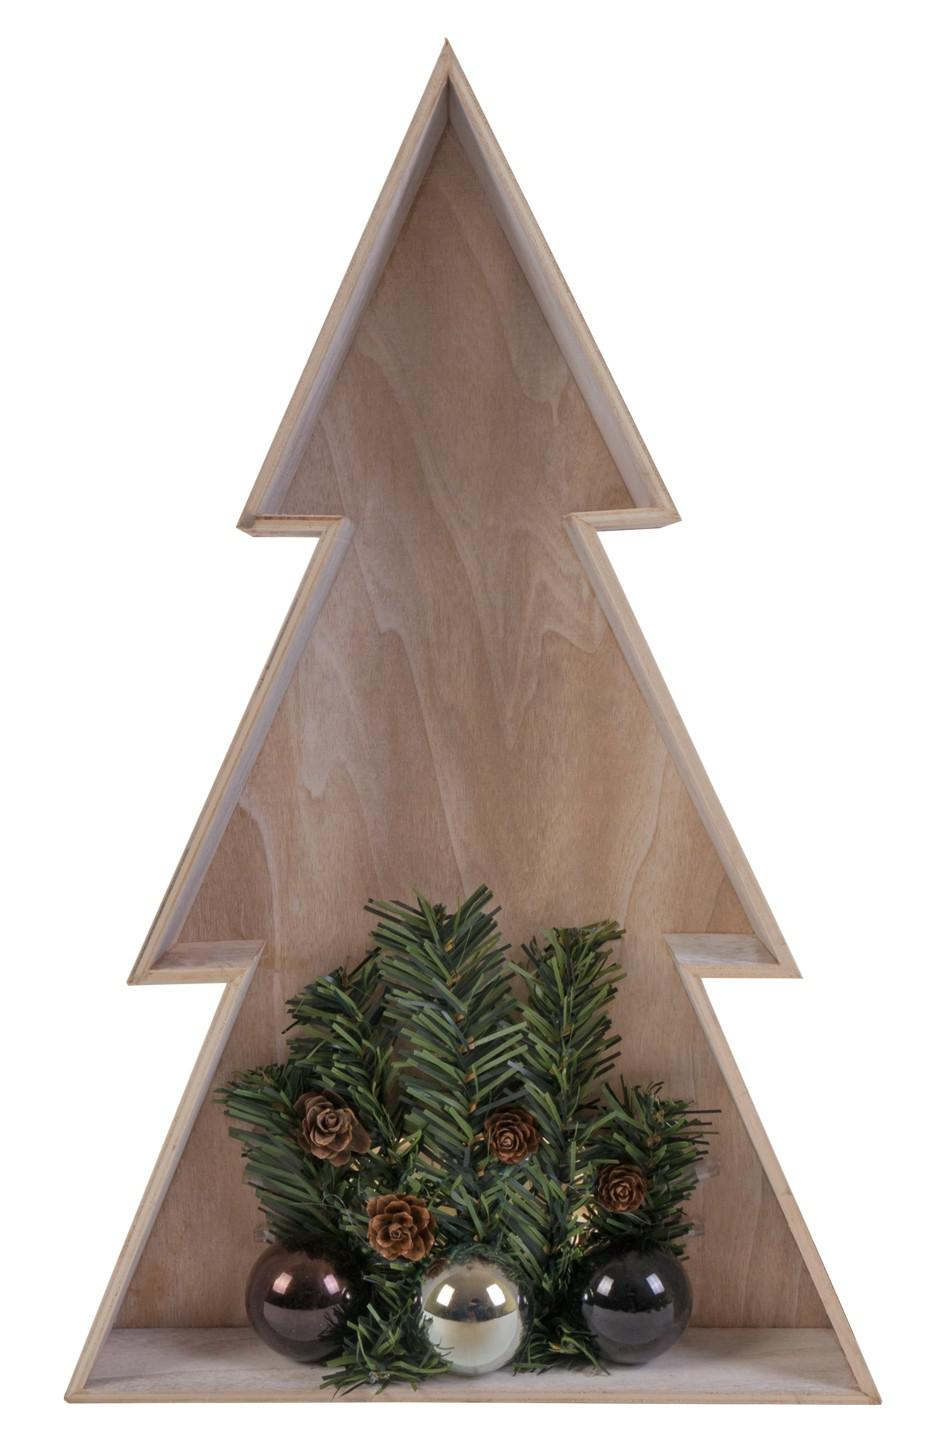 3d led holz weihnachtsbaum 38cm weihnachtsdeko fensterbild wanddeko beleuchtung kaufen bei www. Black Bedroom Furniture Sets. Home Design Ideas